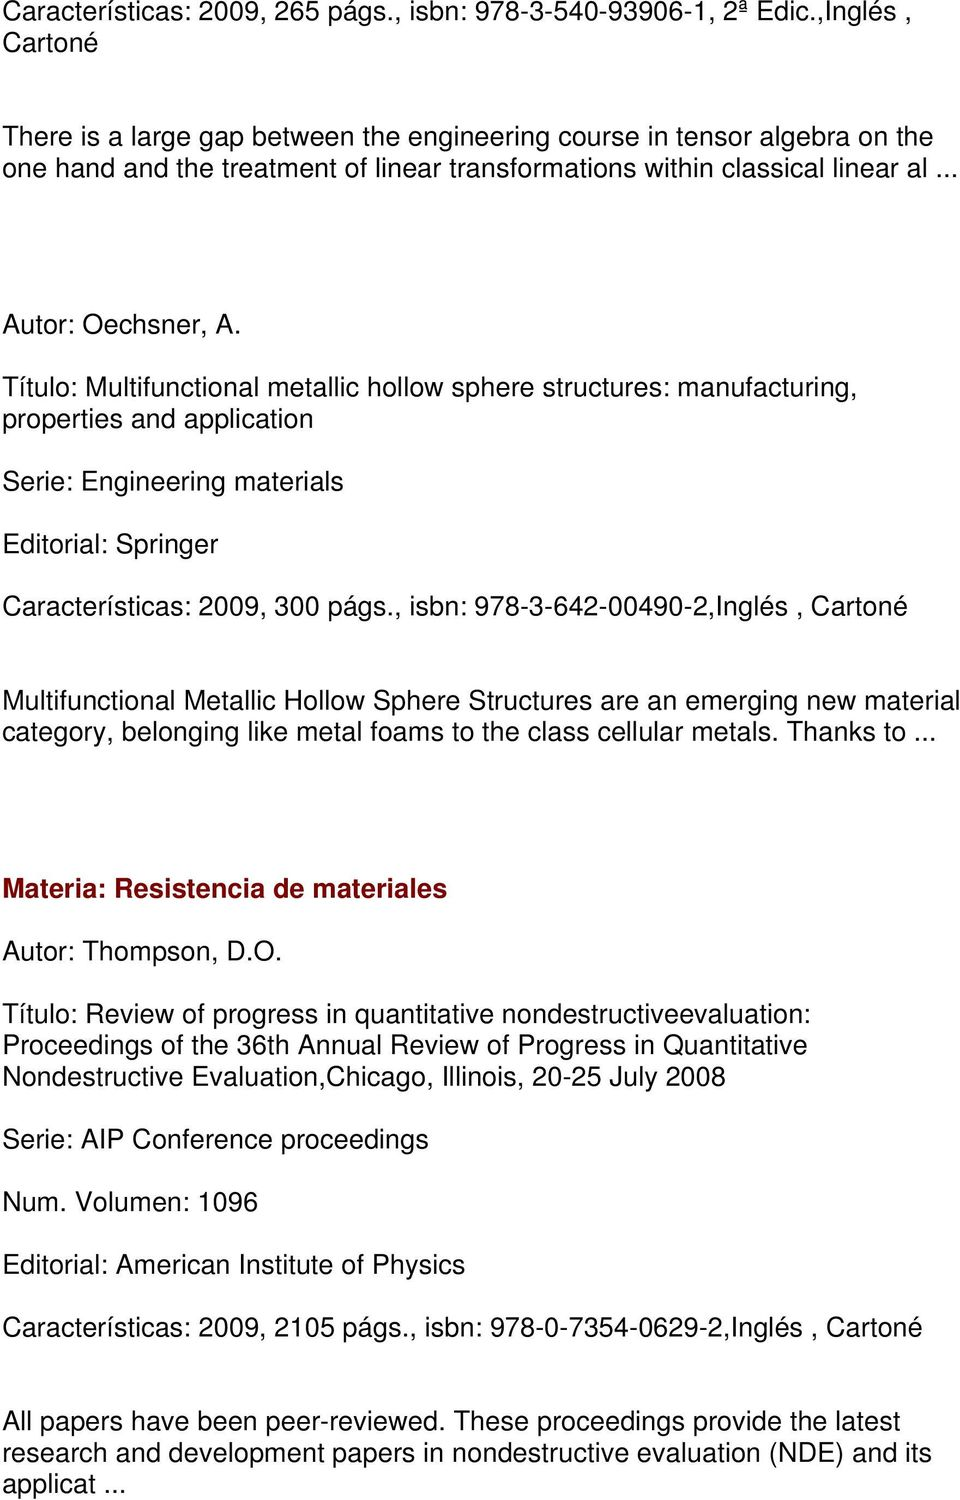 Título: Multifunctional metallic hollow sphere structures: manufacturing, properties and application Serie: Engineering materials Características: 2009, 300 págs.